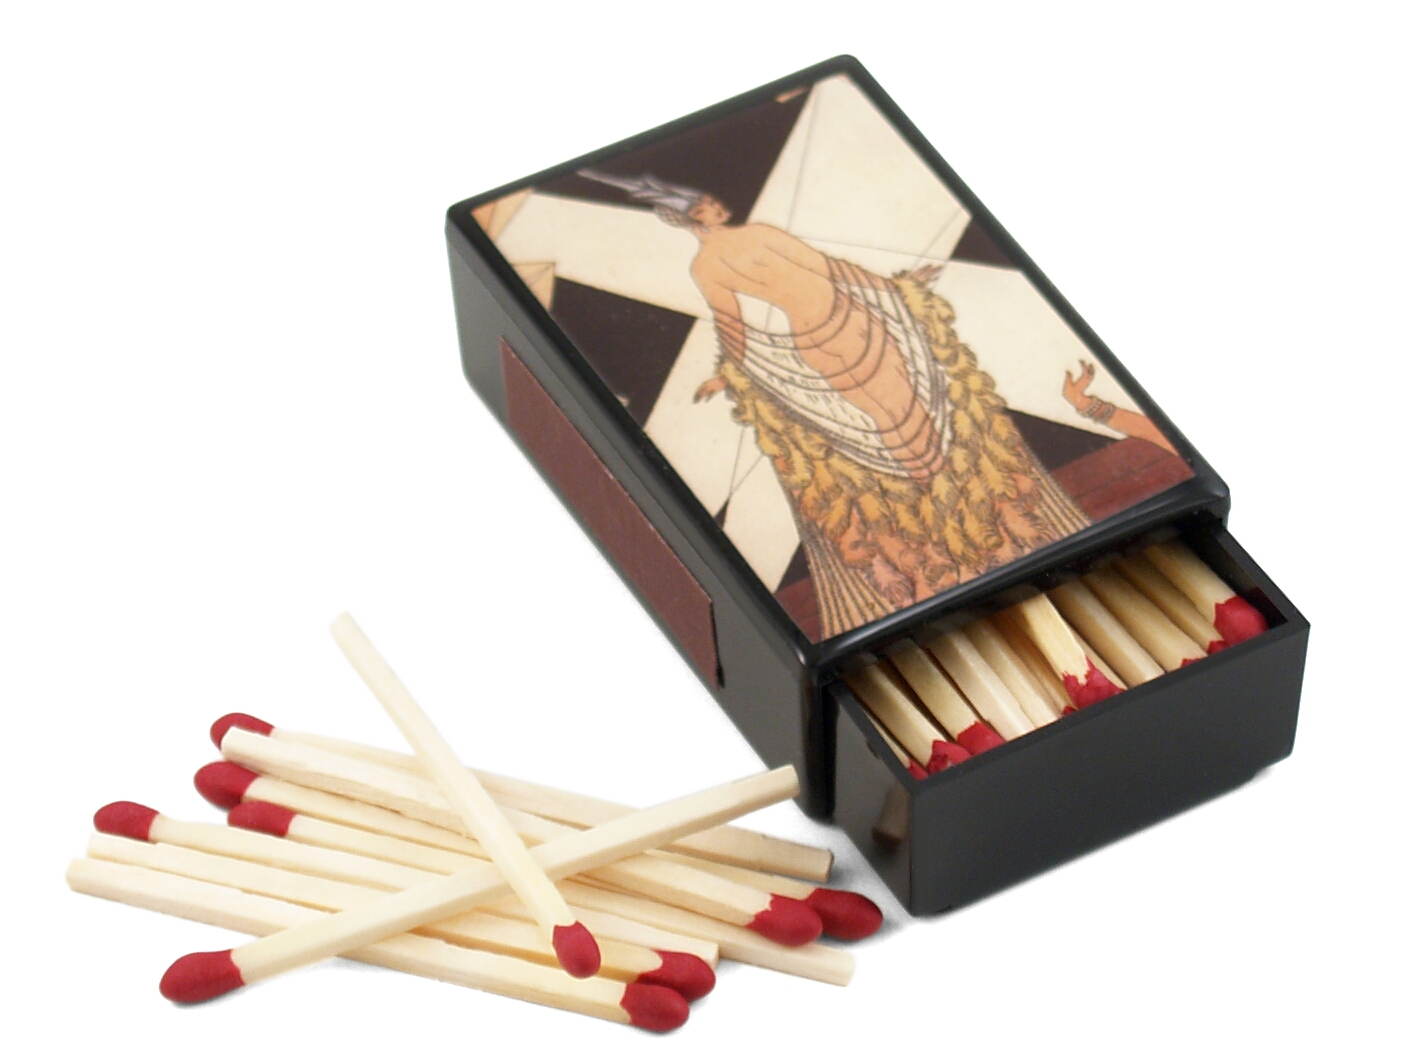 Art Deco Performer Slide Match Box with Matches